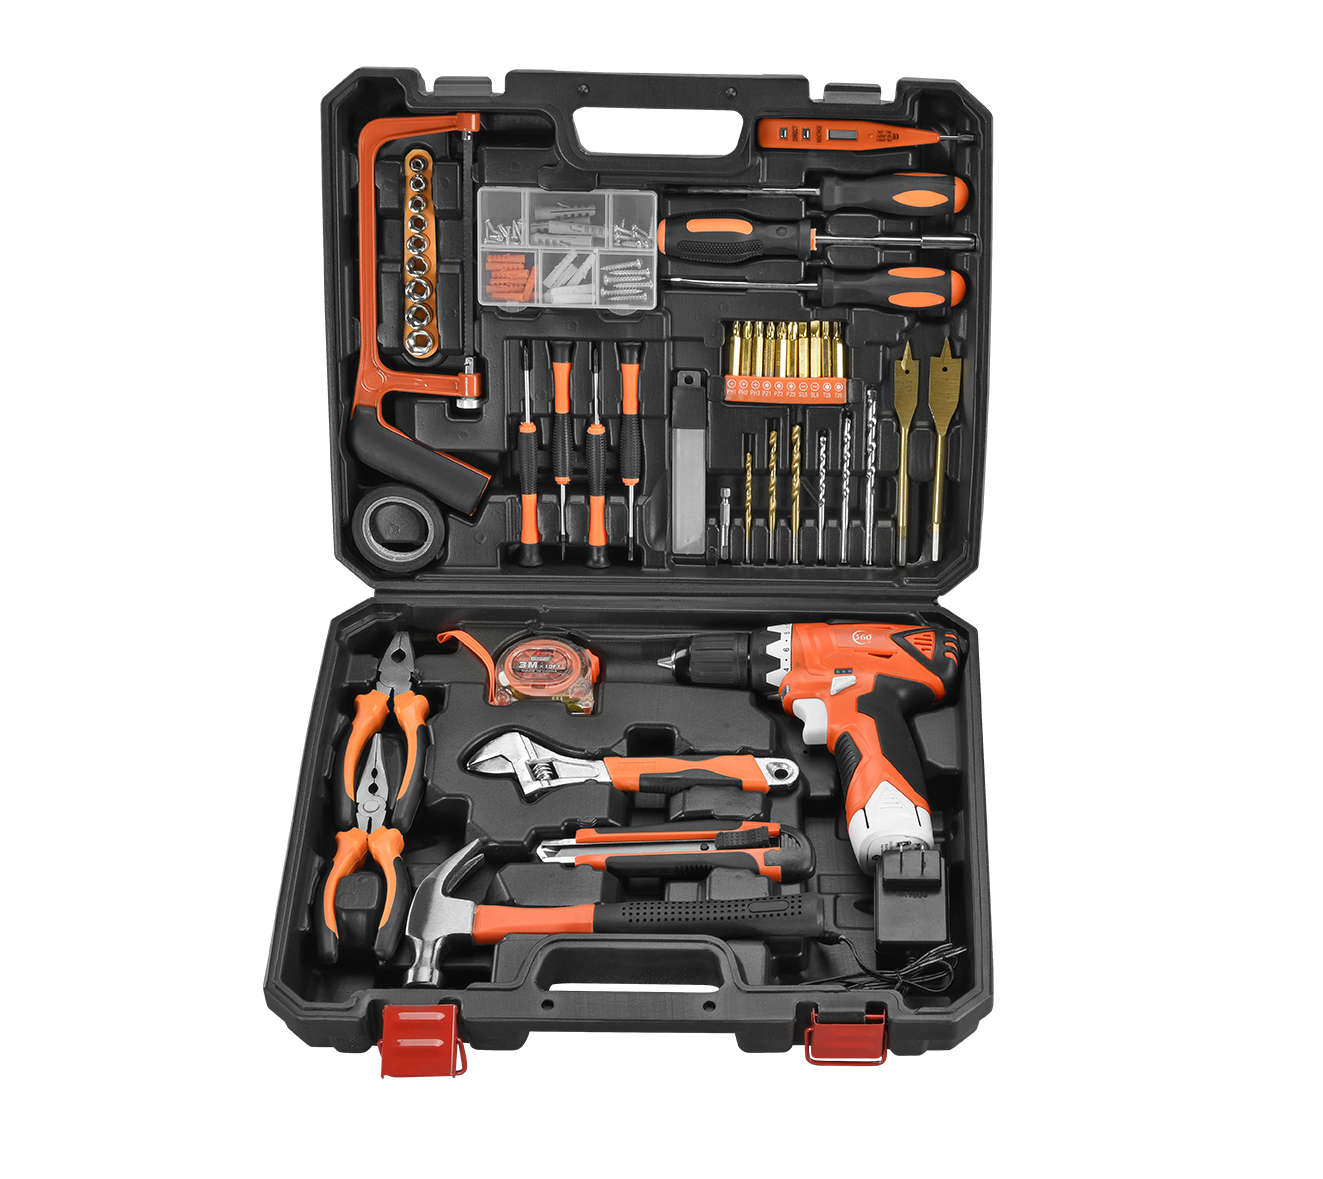 Dadao <strong>Tools</strong>, Power Electrical Cordless Drill <strong>Tools</strong> Kit